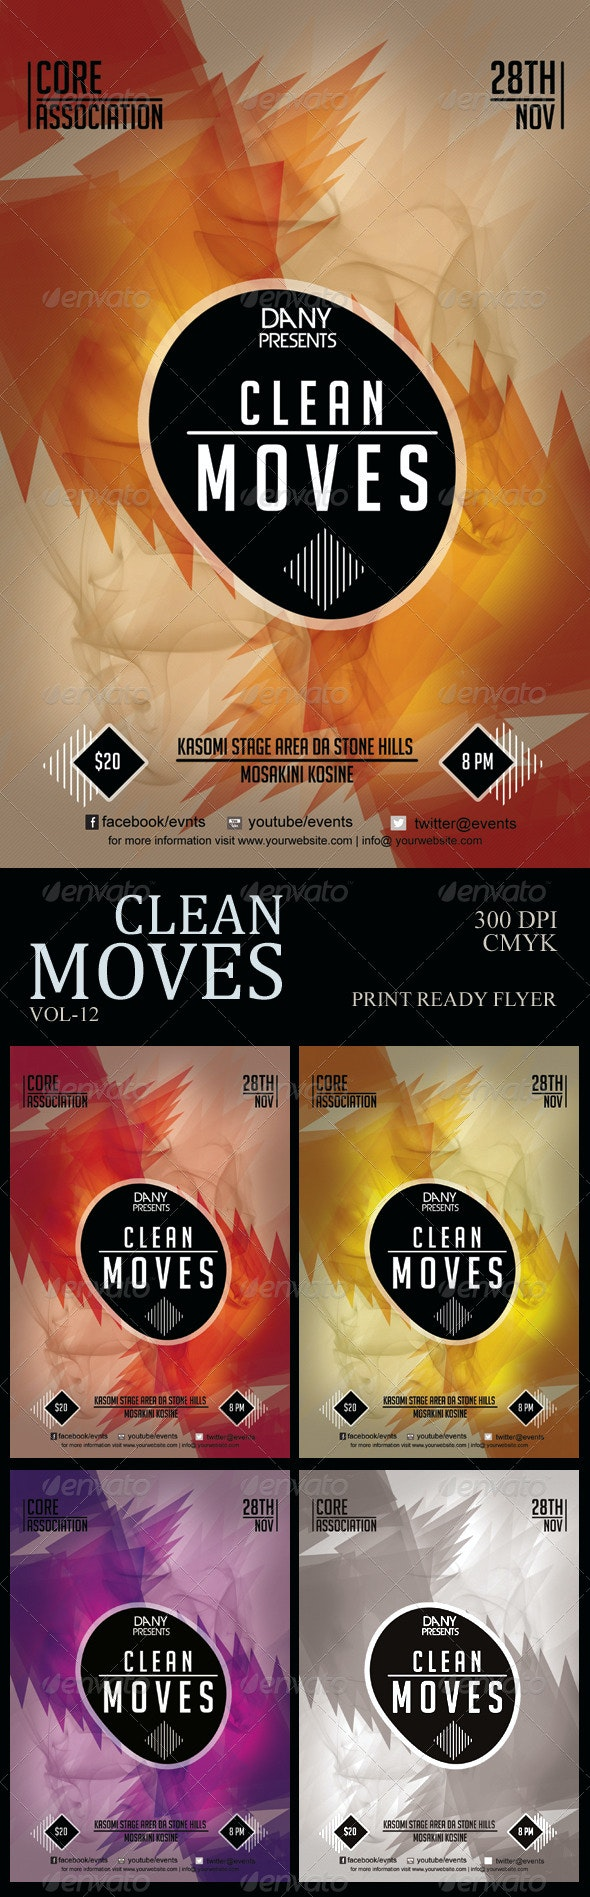 Clean Moves 12 Futuristic Flyer - Clubs & Parties Events